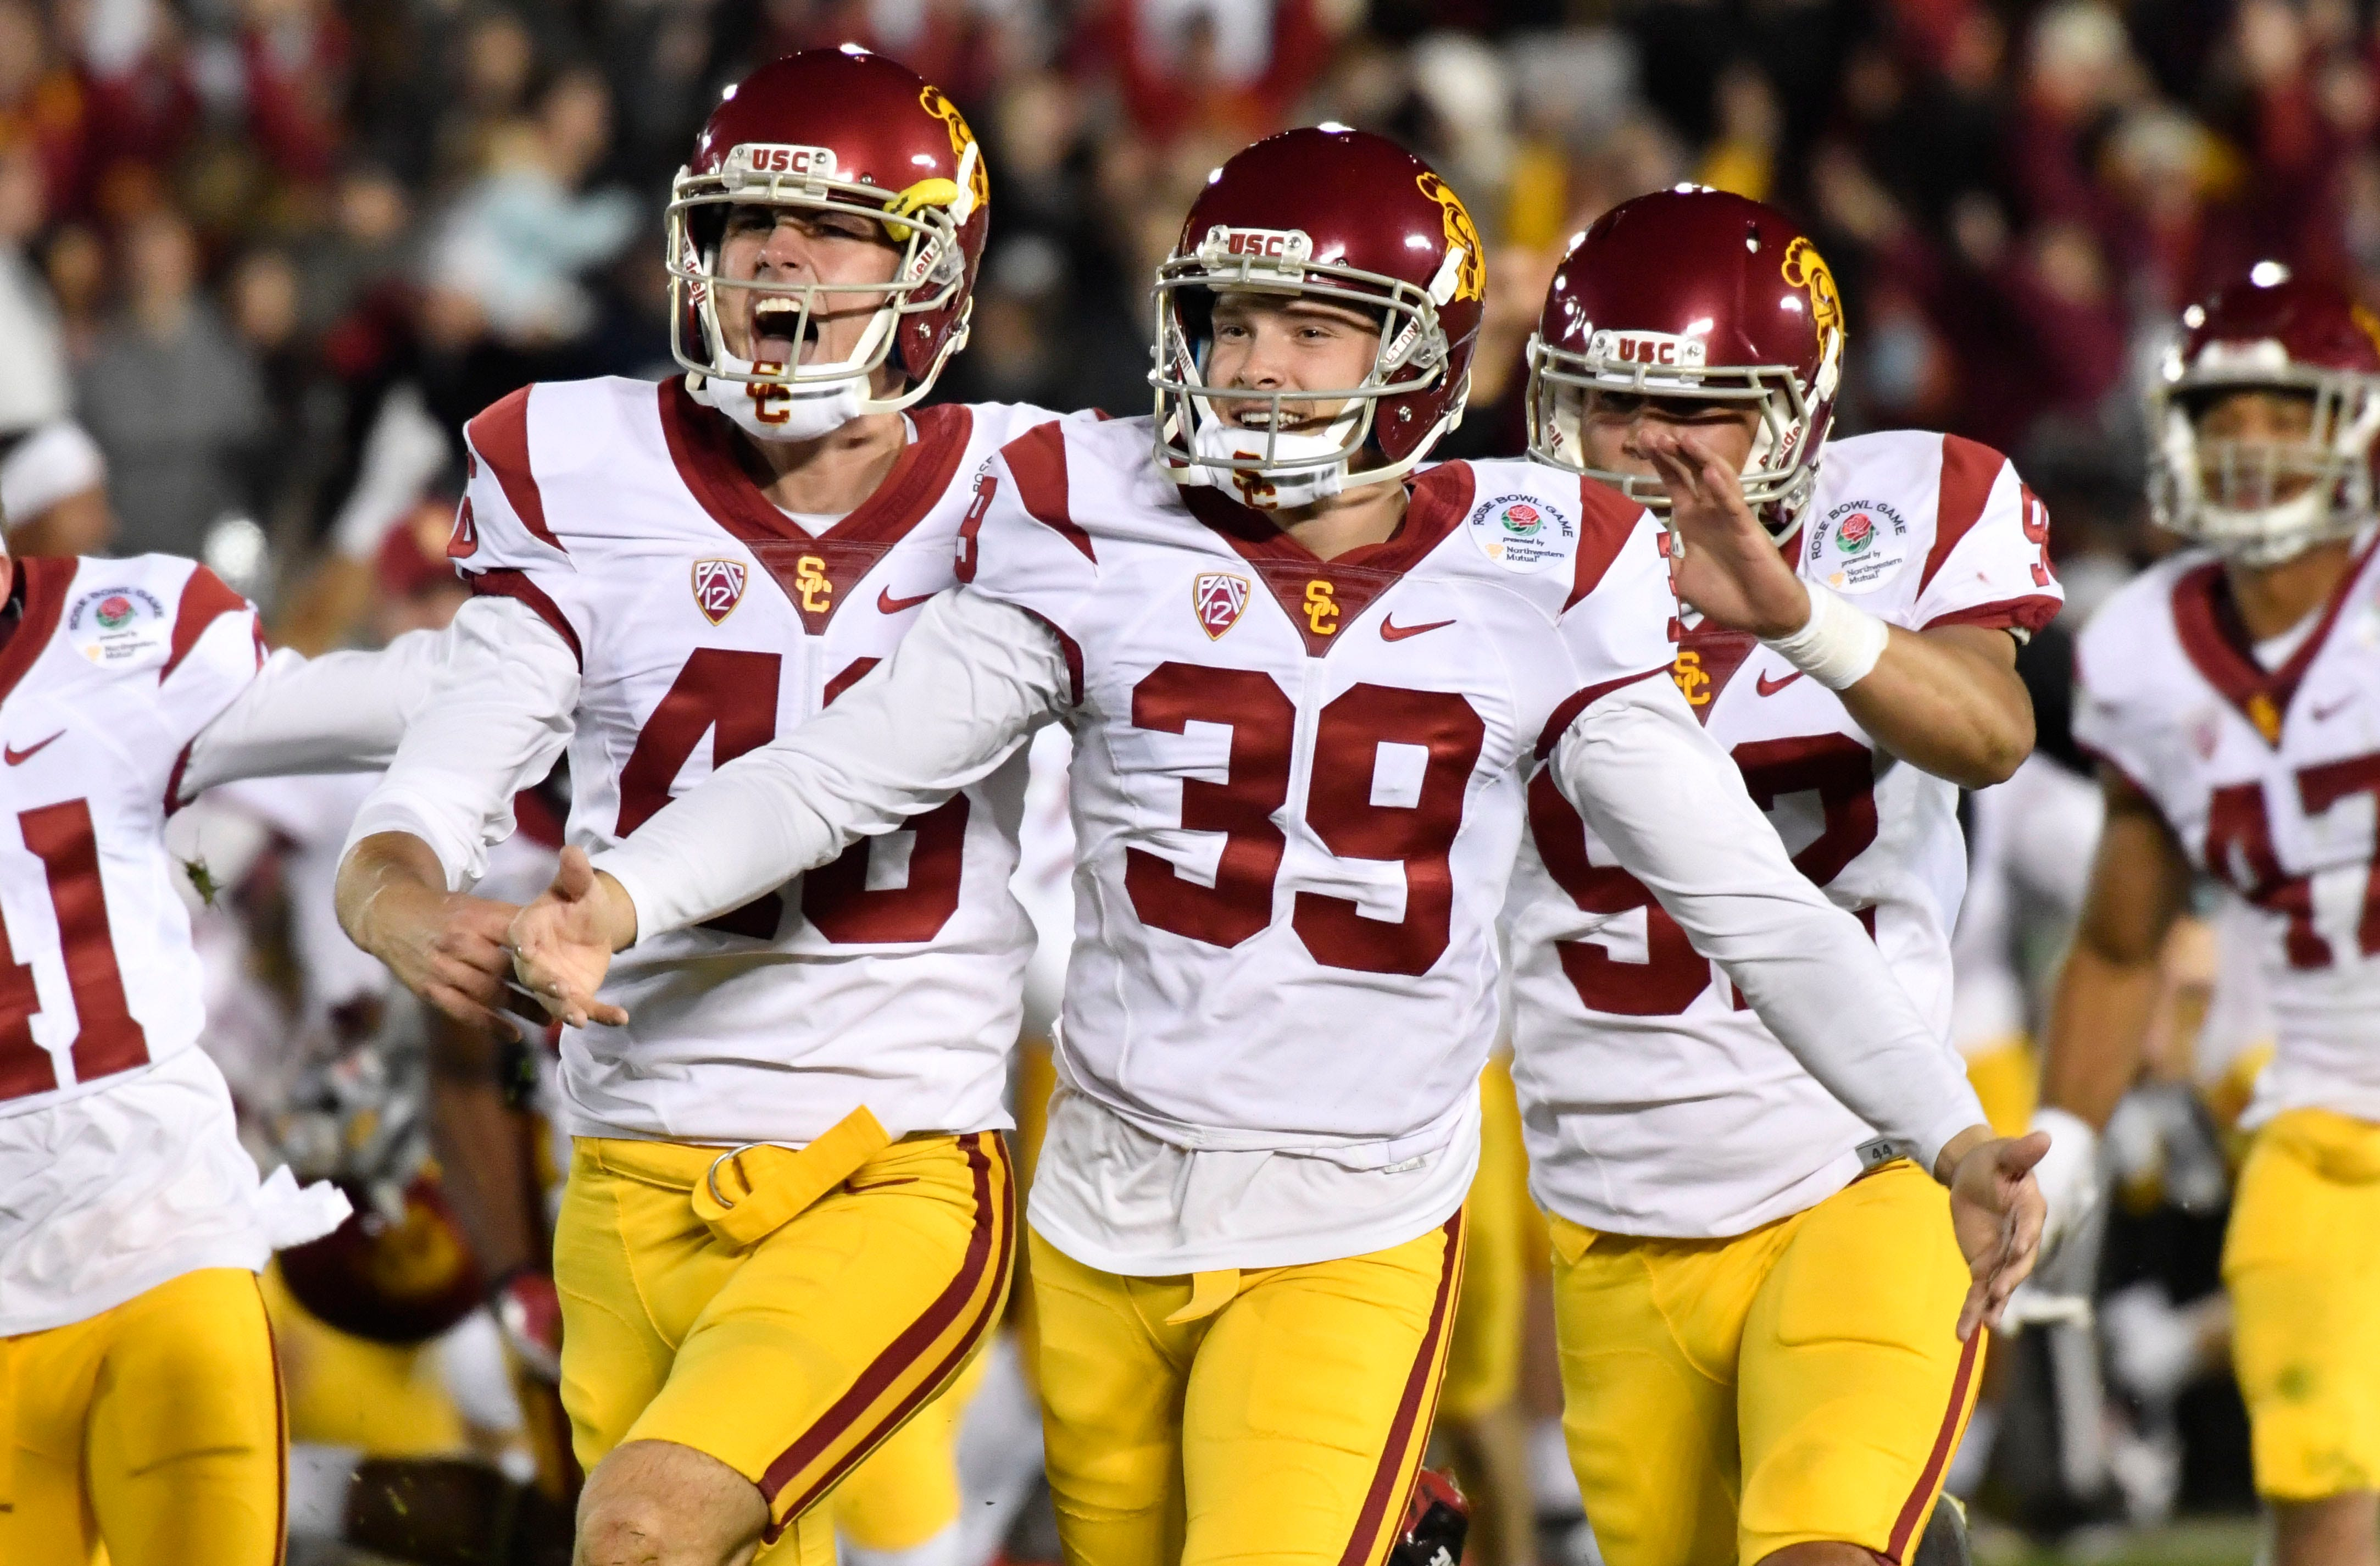 Former Southern California kicker sues school over expulsion based on domestic abuse claim